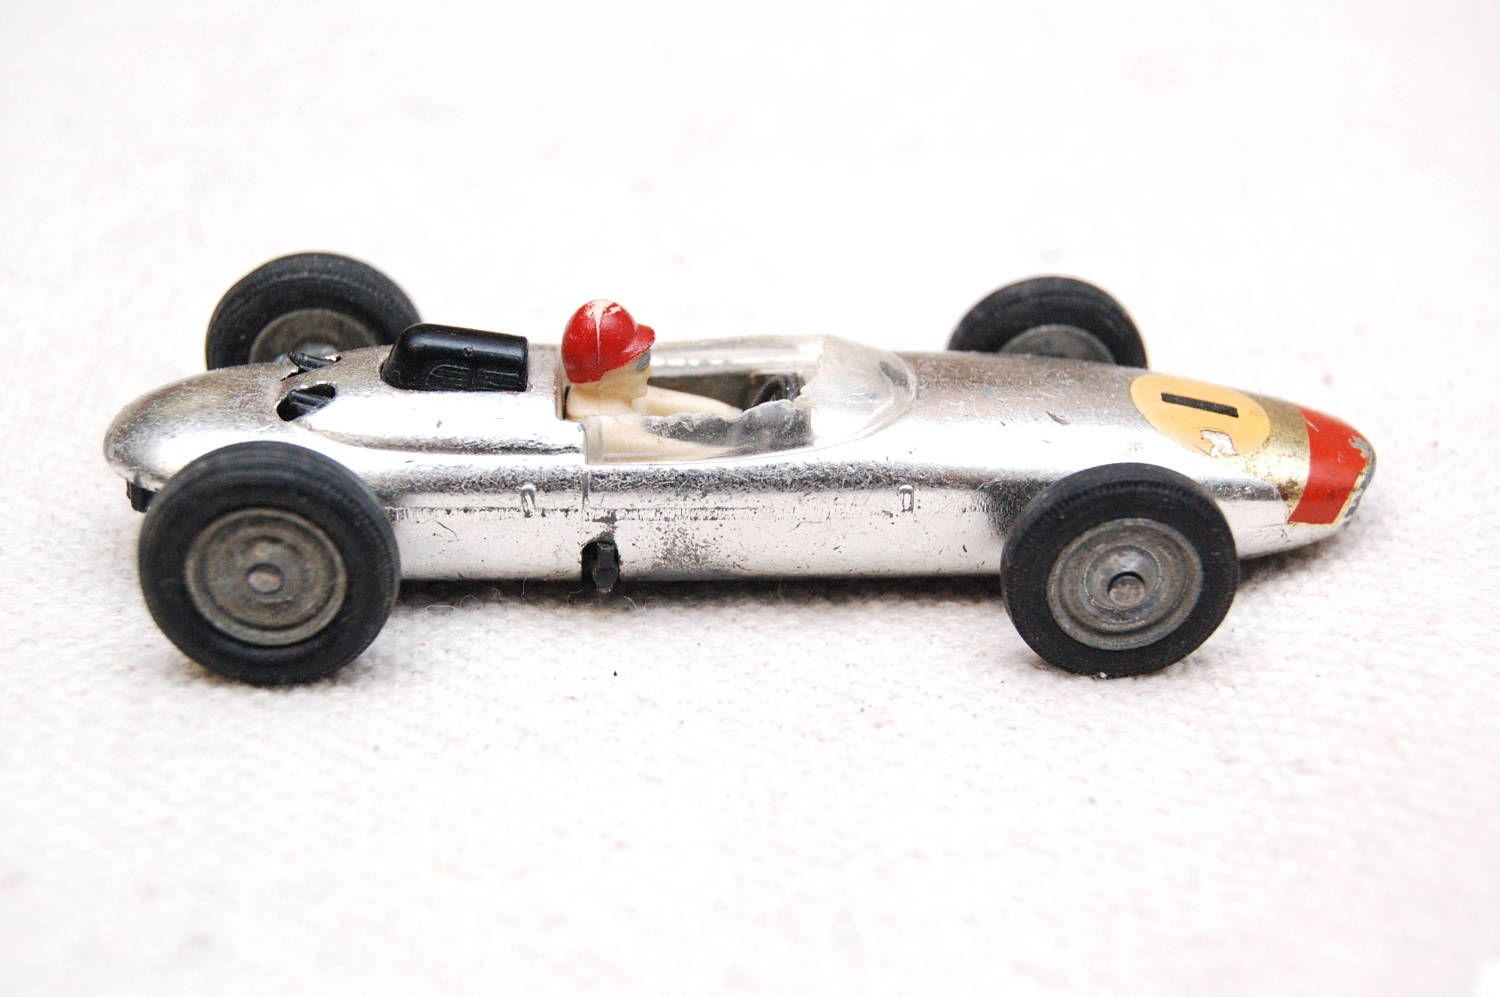 Vintage Solido Toys, Lola Climax V8, F1 Race Car, Formula One ...